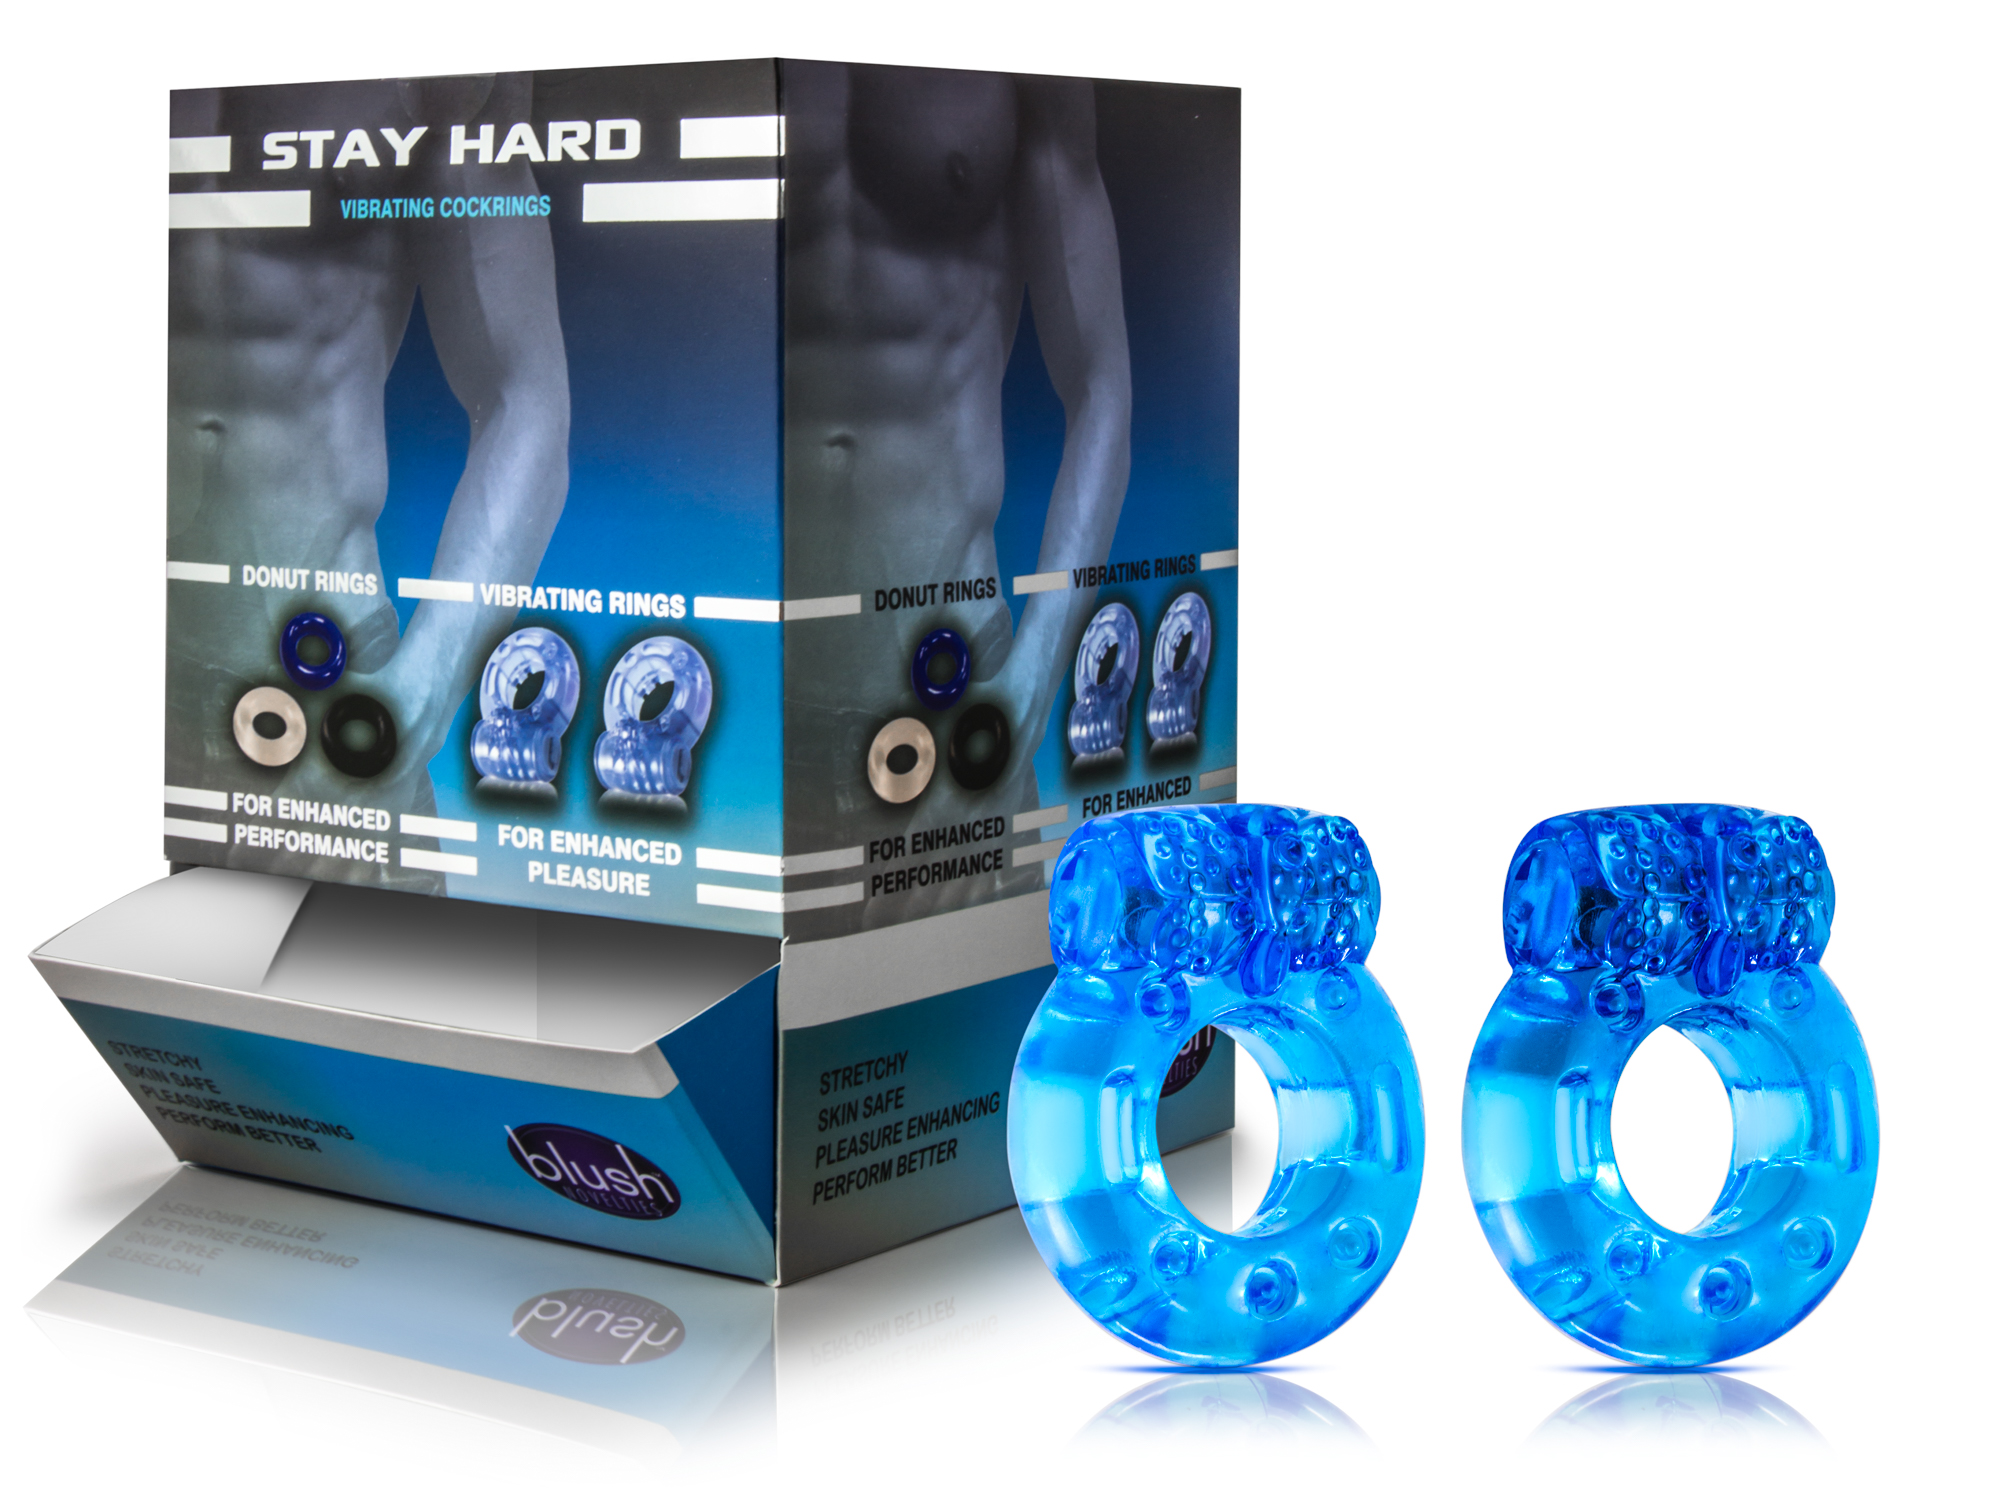 Stay Hard - Disposable Vibrating Cock Rings - 32 pc. Display